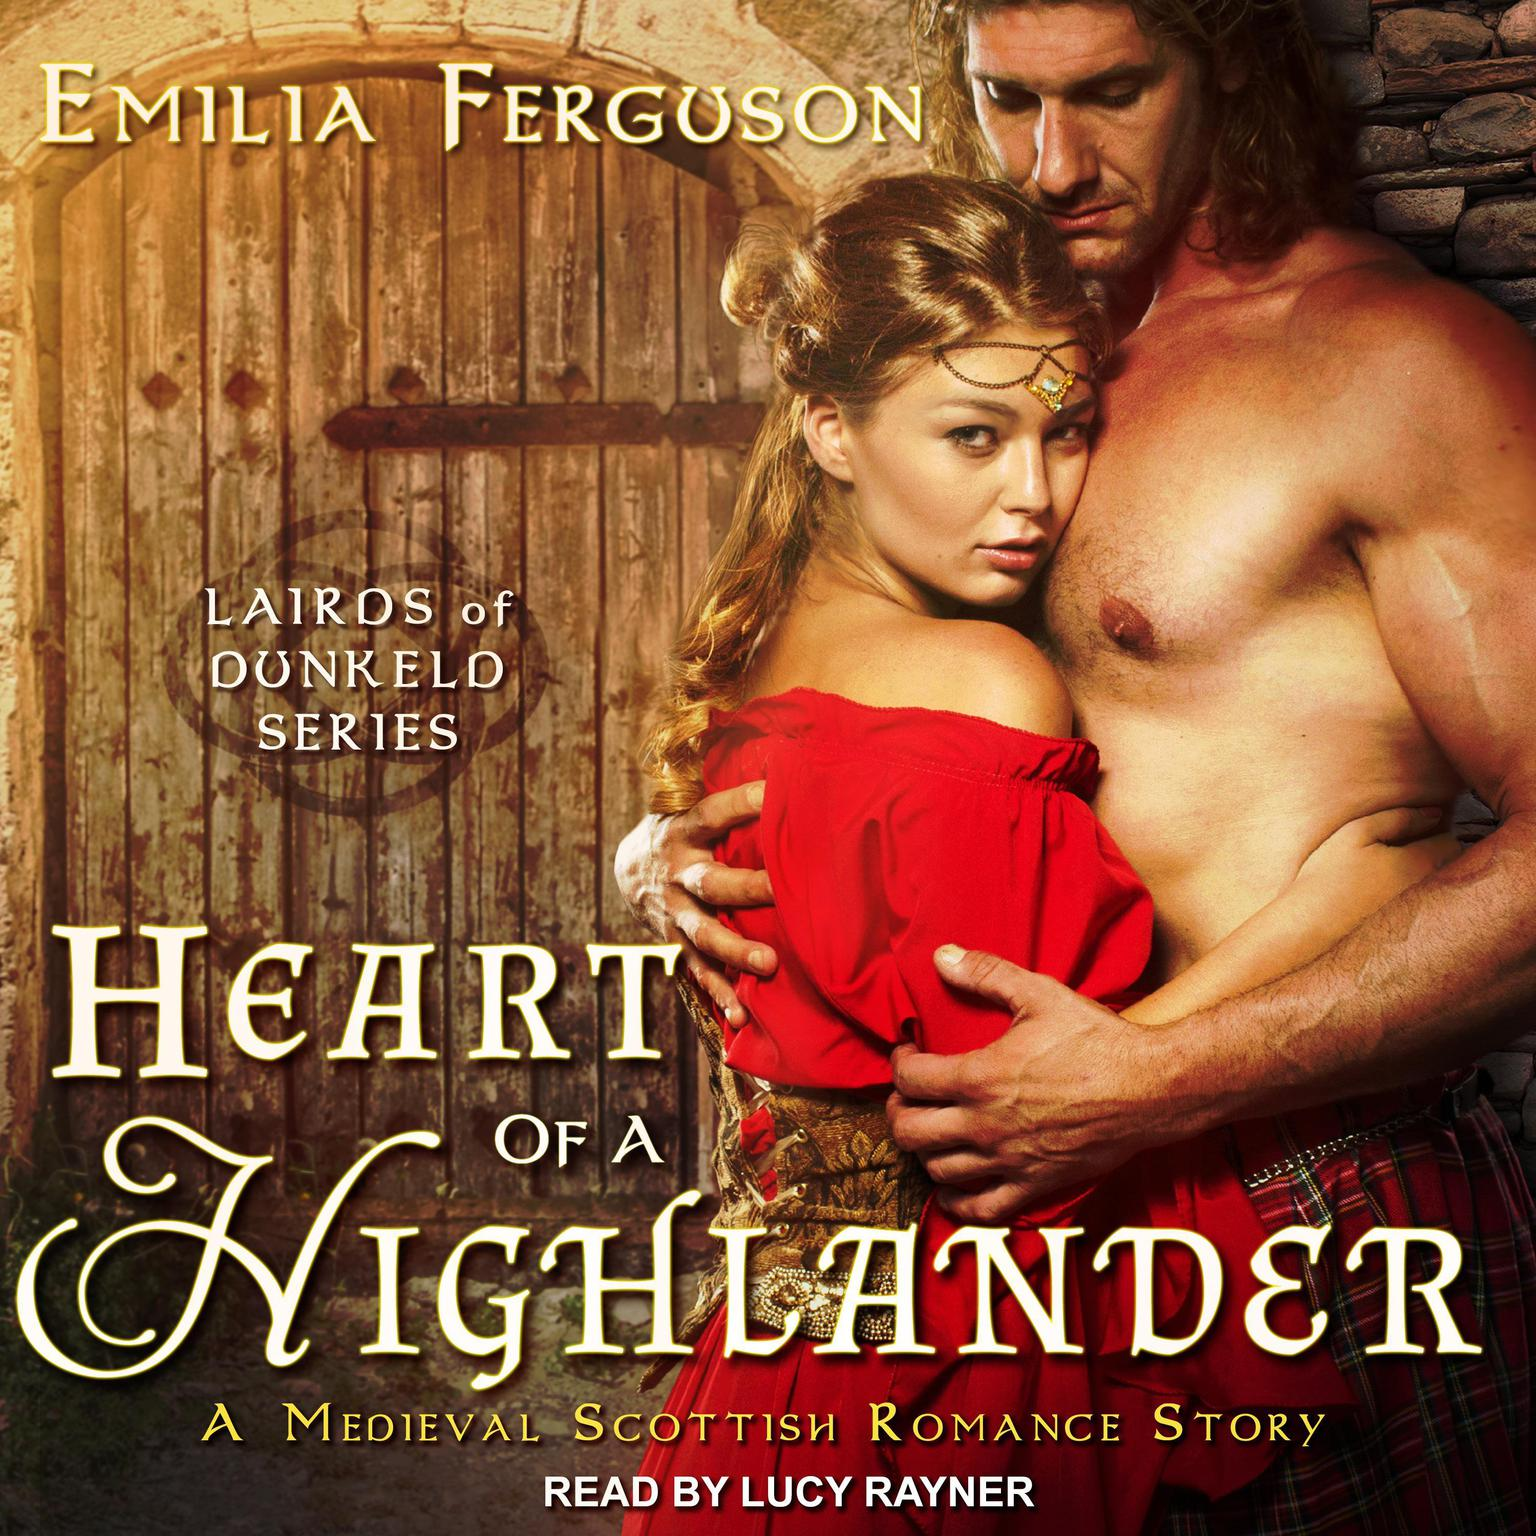 Printable Heart of a Highlander: A Medieval Scottish Romance Story Audiobook Cover Art